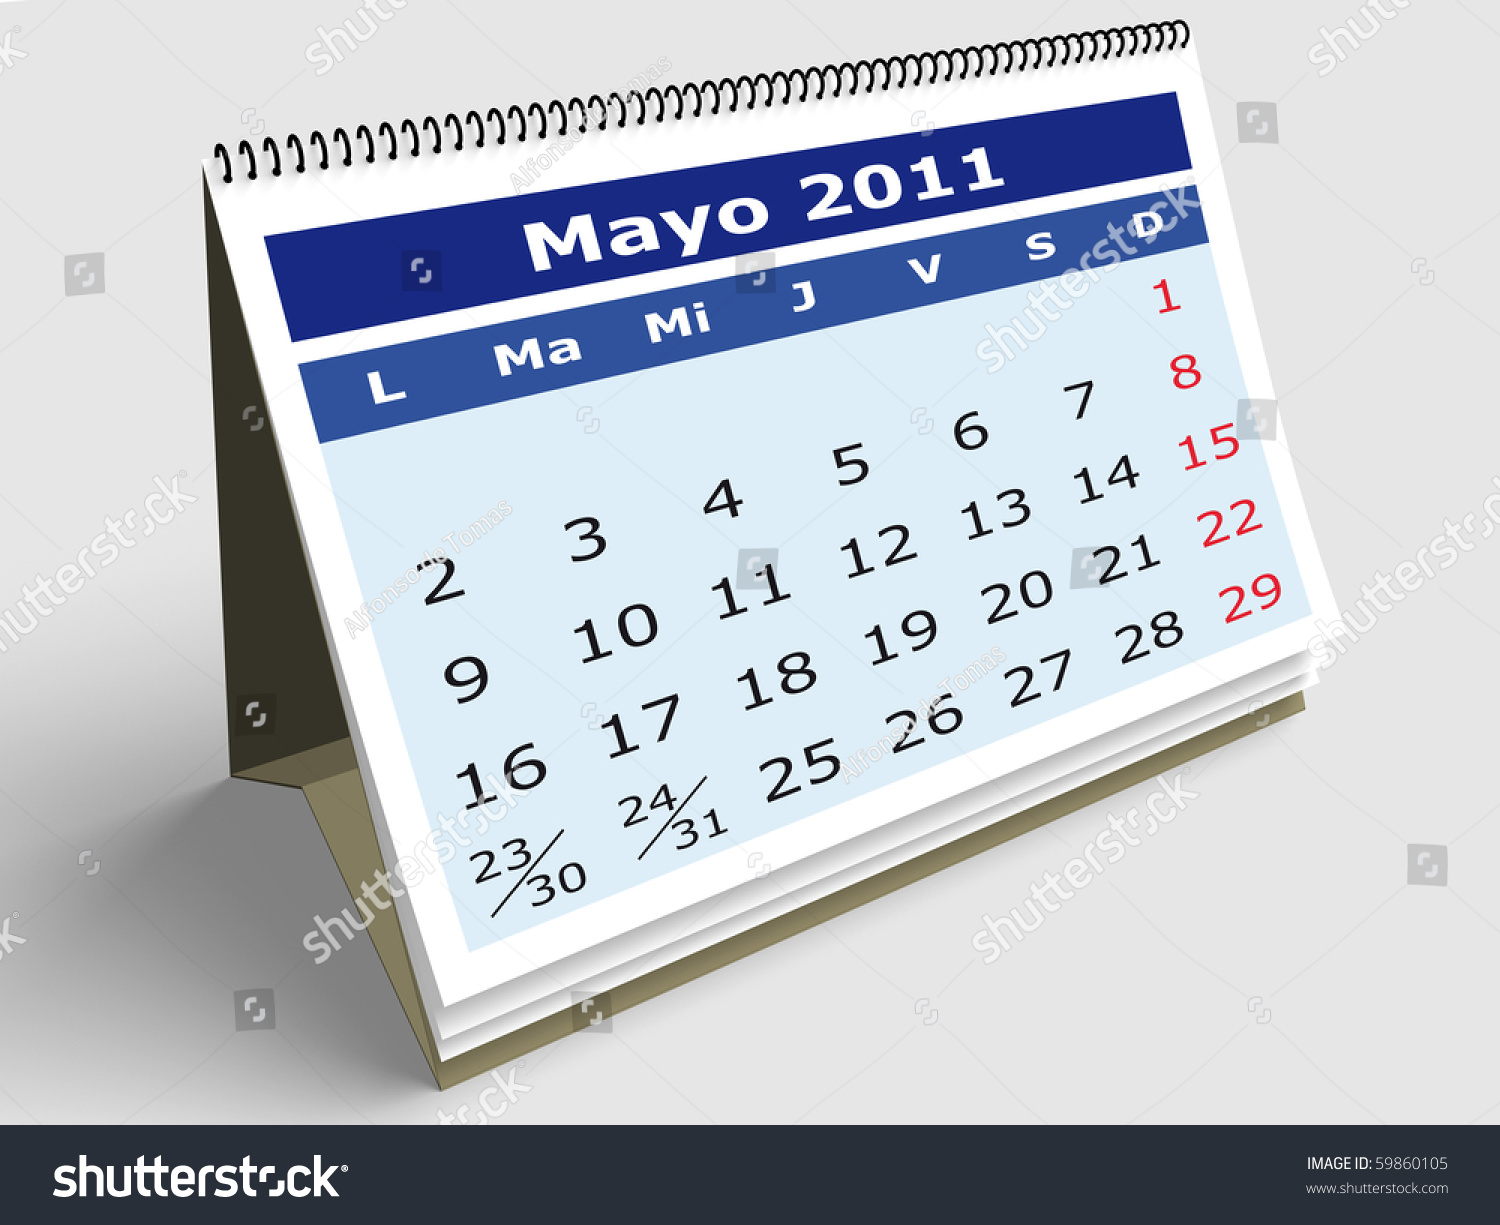 May Spanish Calendar : May in a spanish calendar for d render stock photo